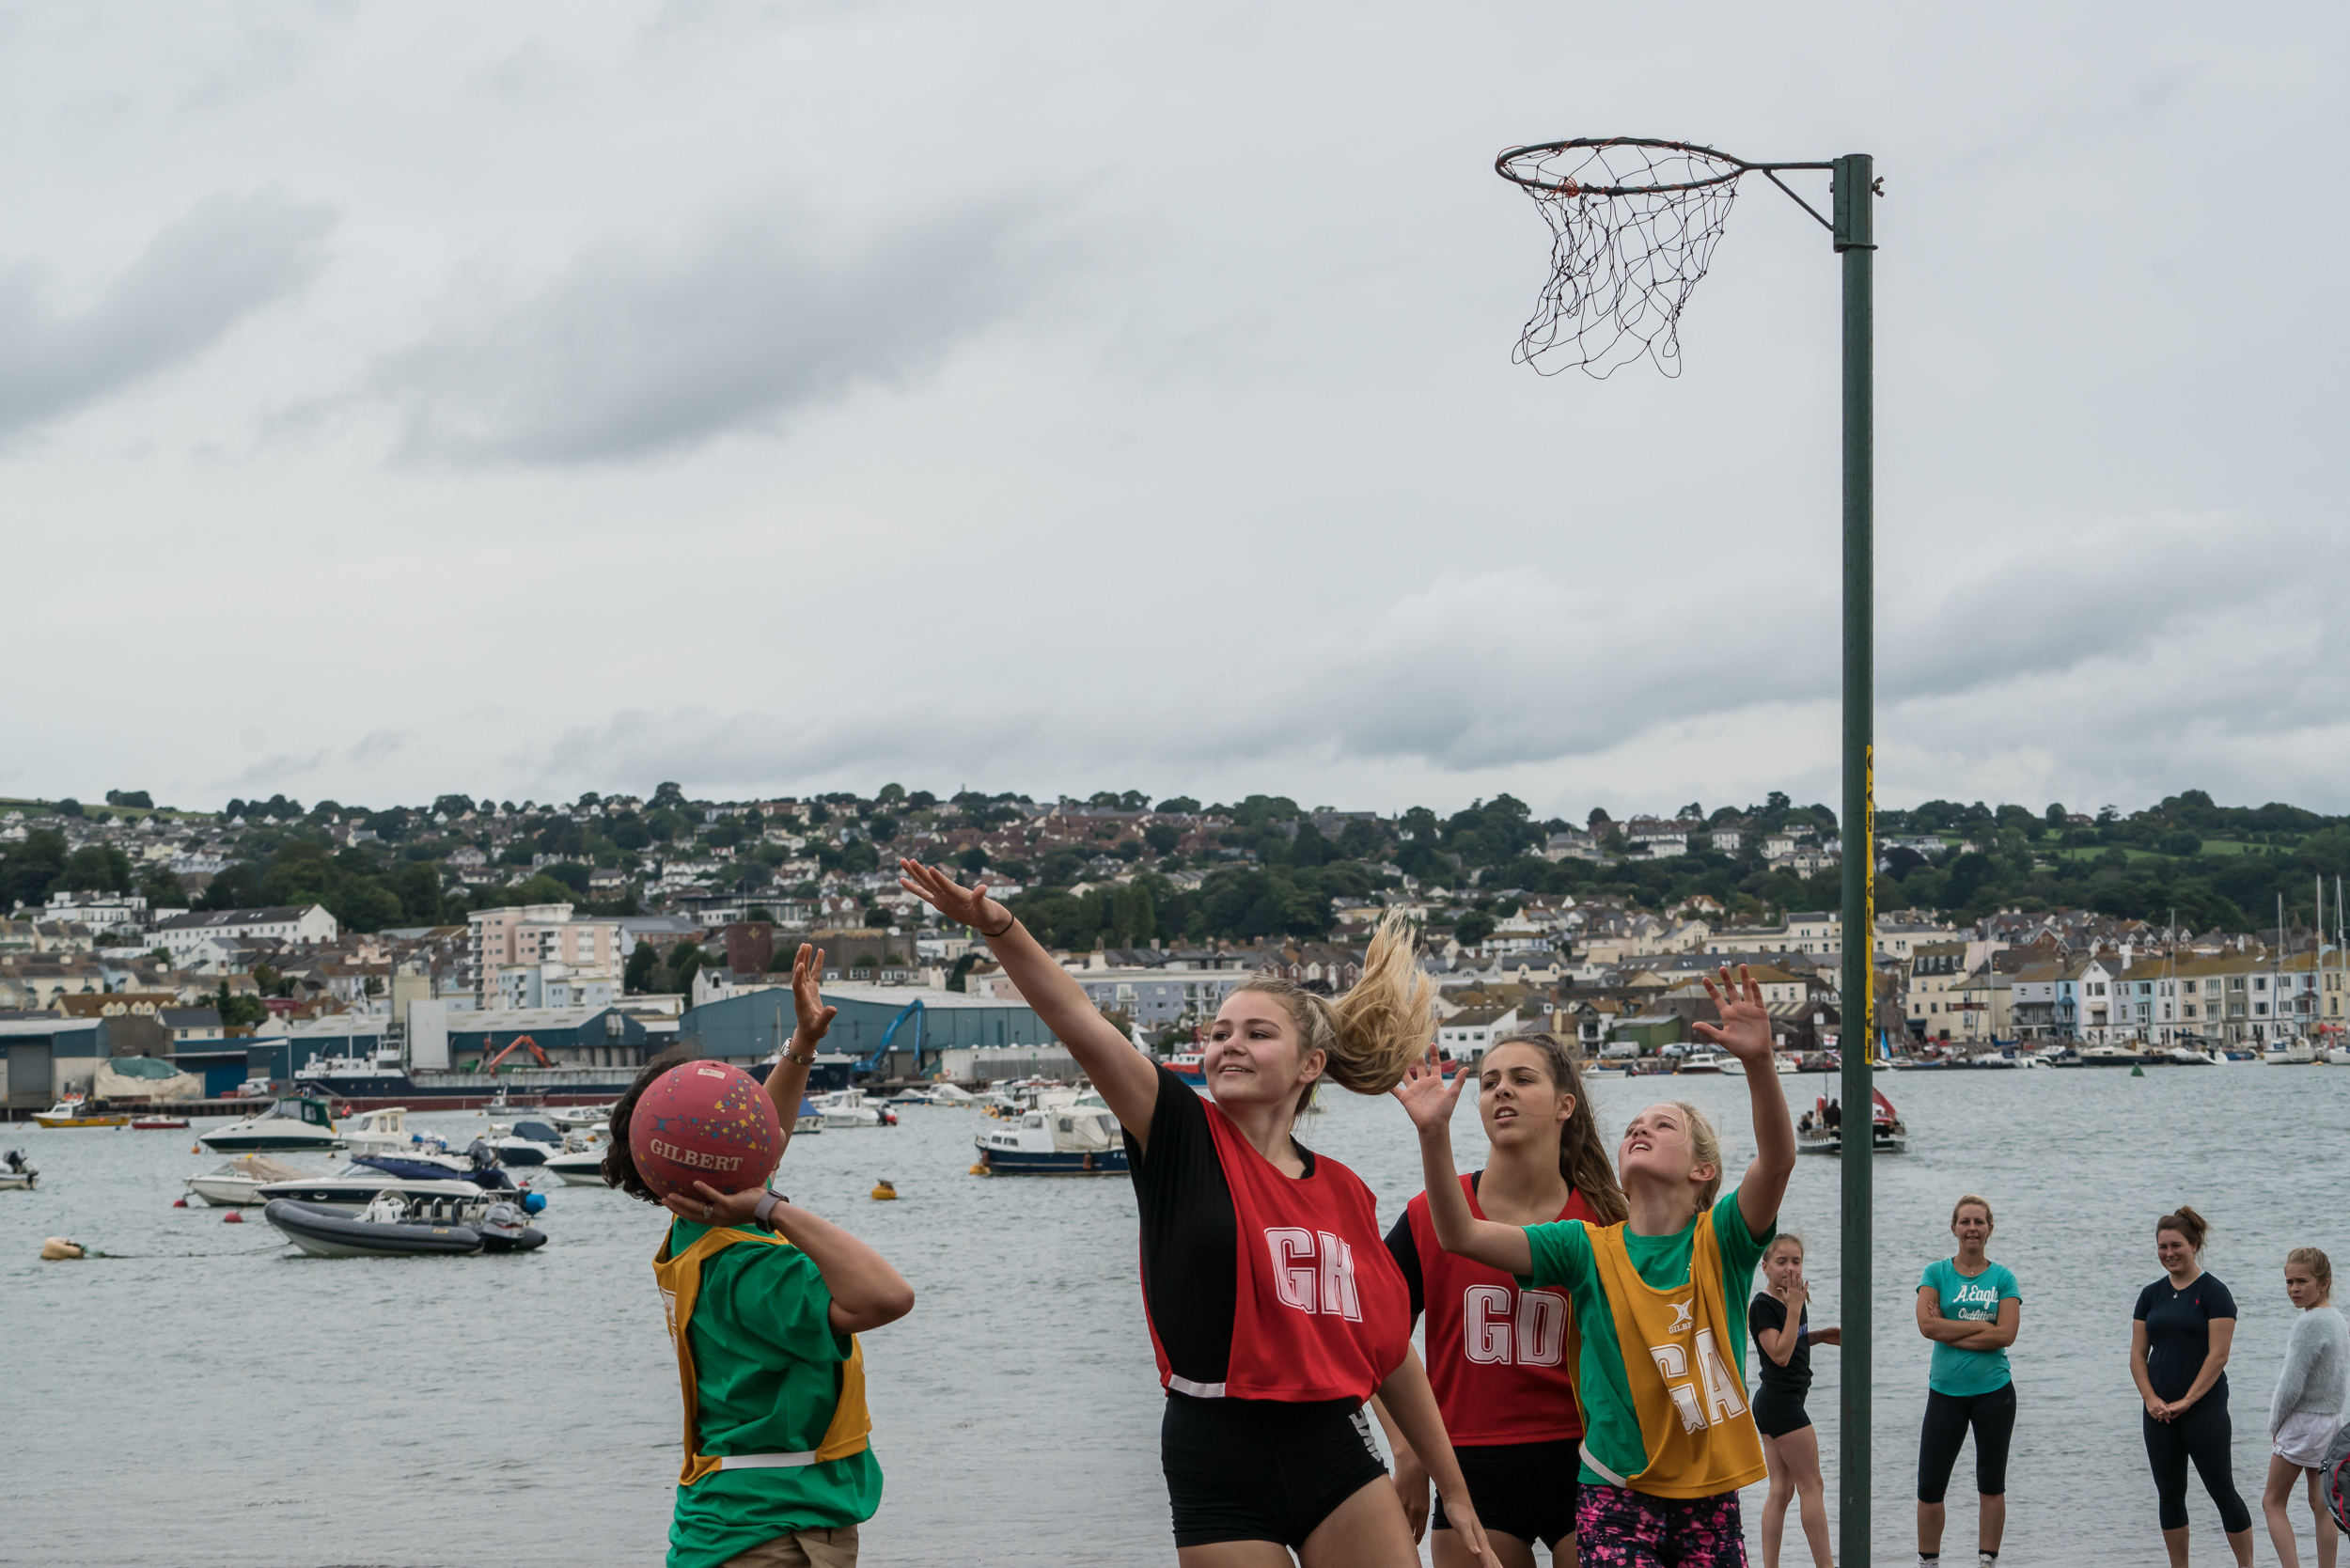 Beach netball - A new event to our regatta programme in 2017, it's already proved a huge success with some very highly contested matches! Teams of seven consisting of four adults and three aged 8-15 inclusive play to Shaldon rules. Entries are restricted and teams entered on a 'first come, first served' basis.